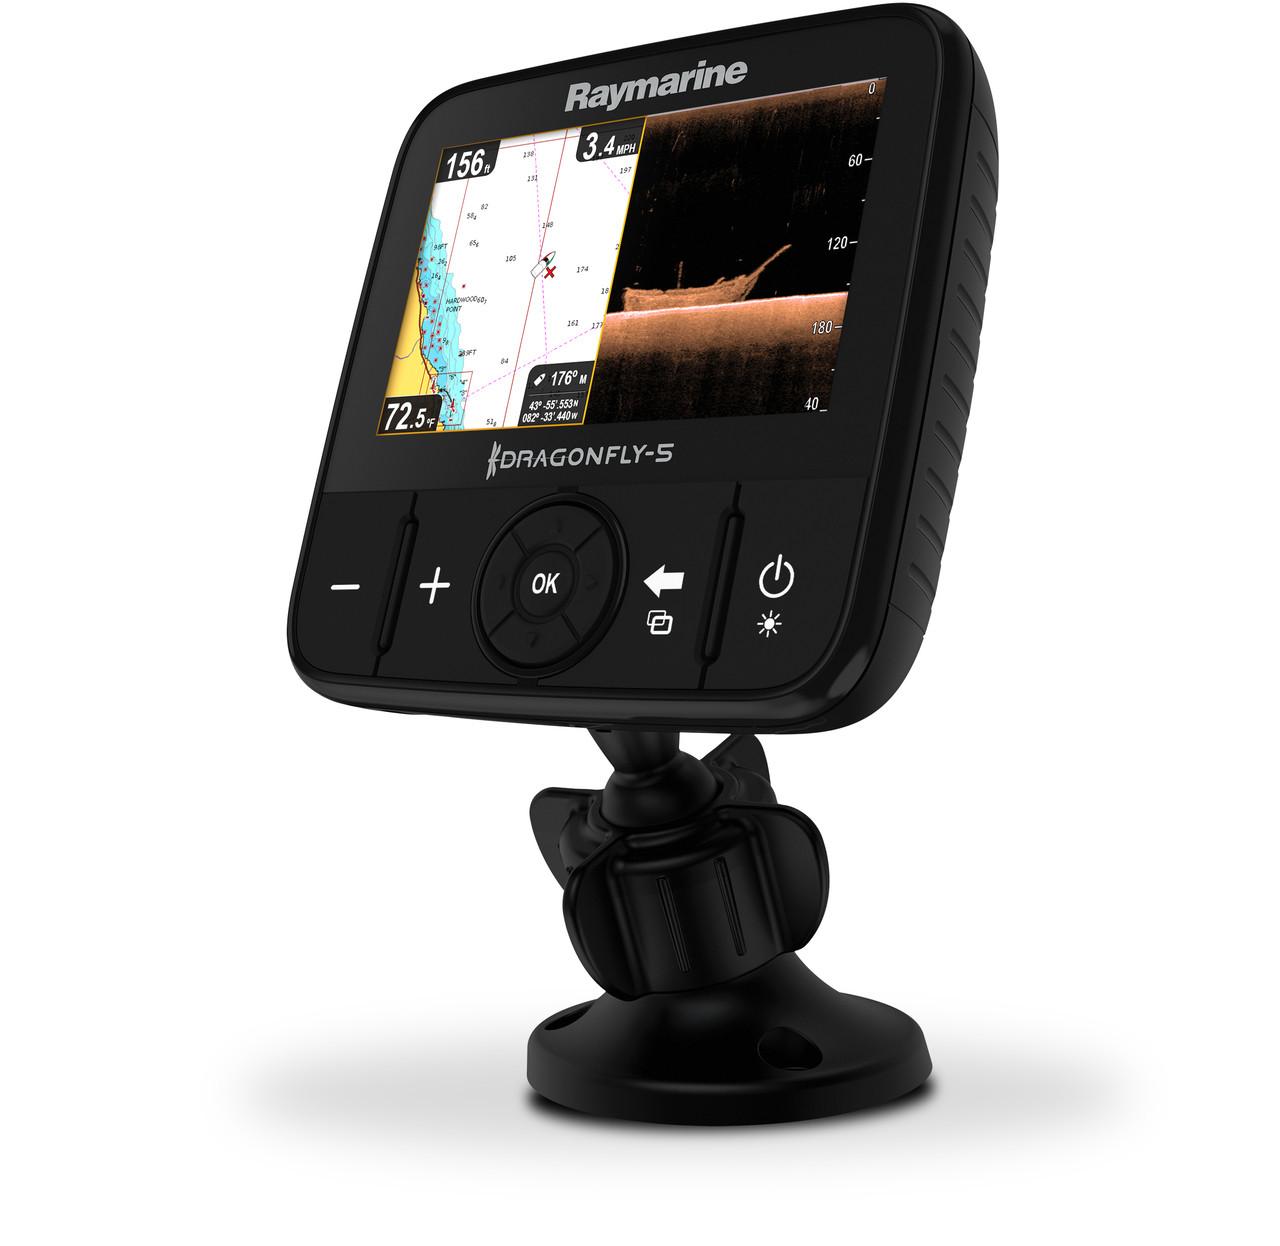 Raymarine Dragonfly 5PRO Fishfinder Right View